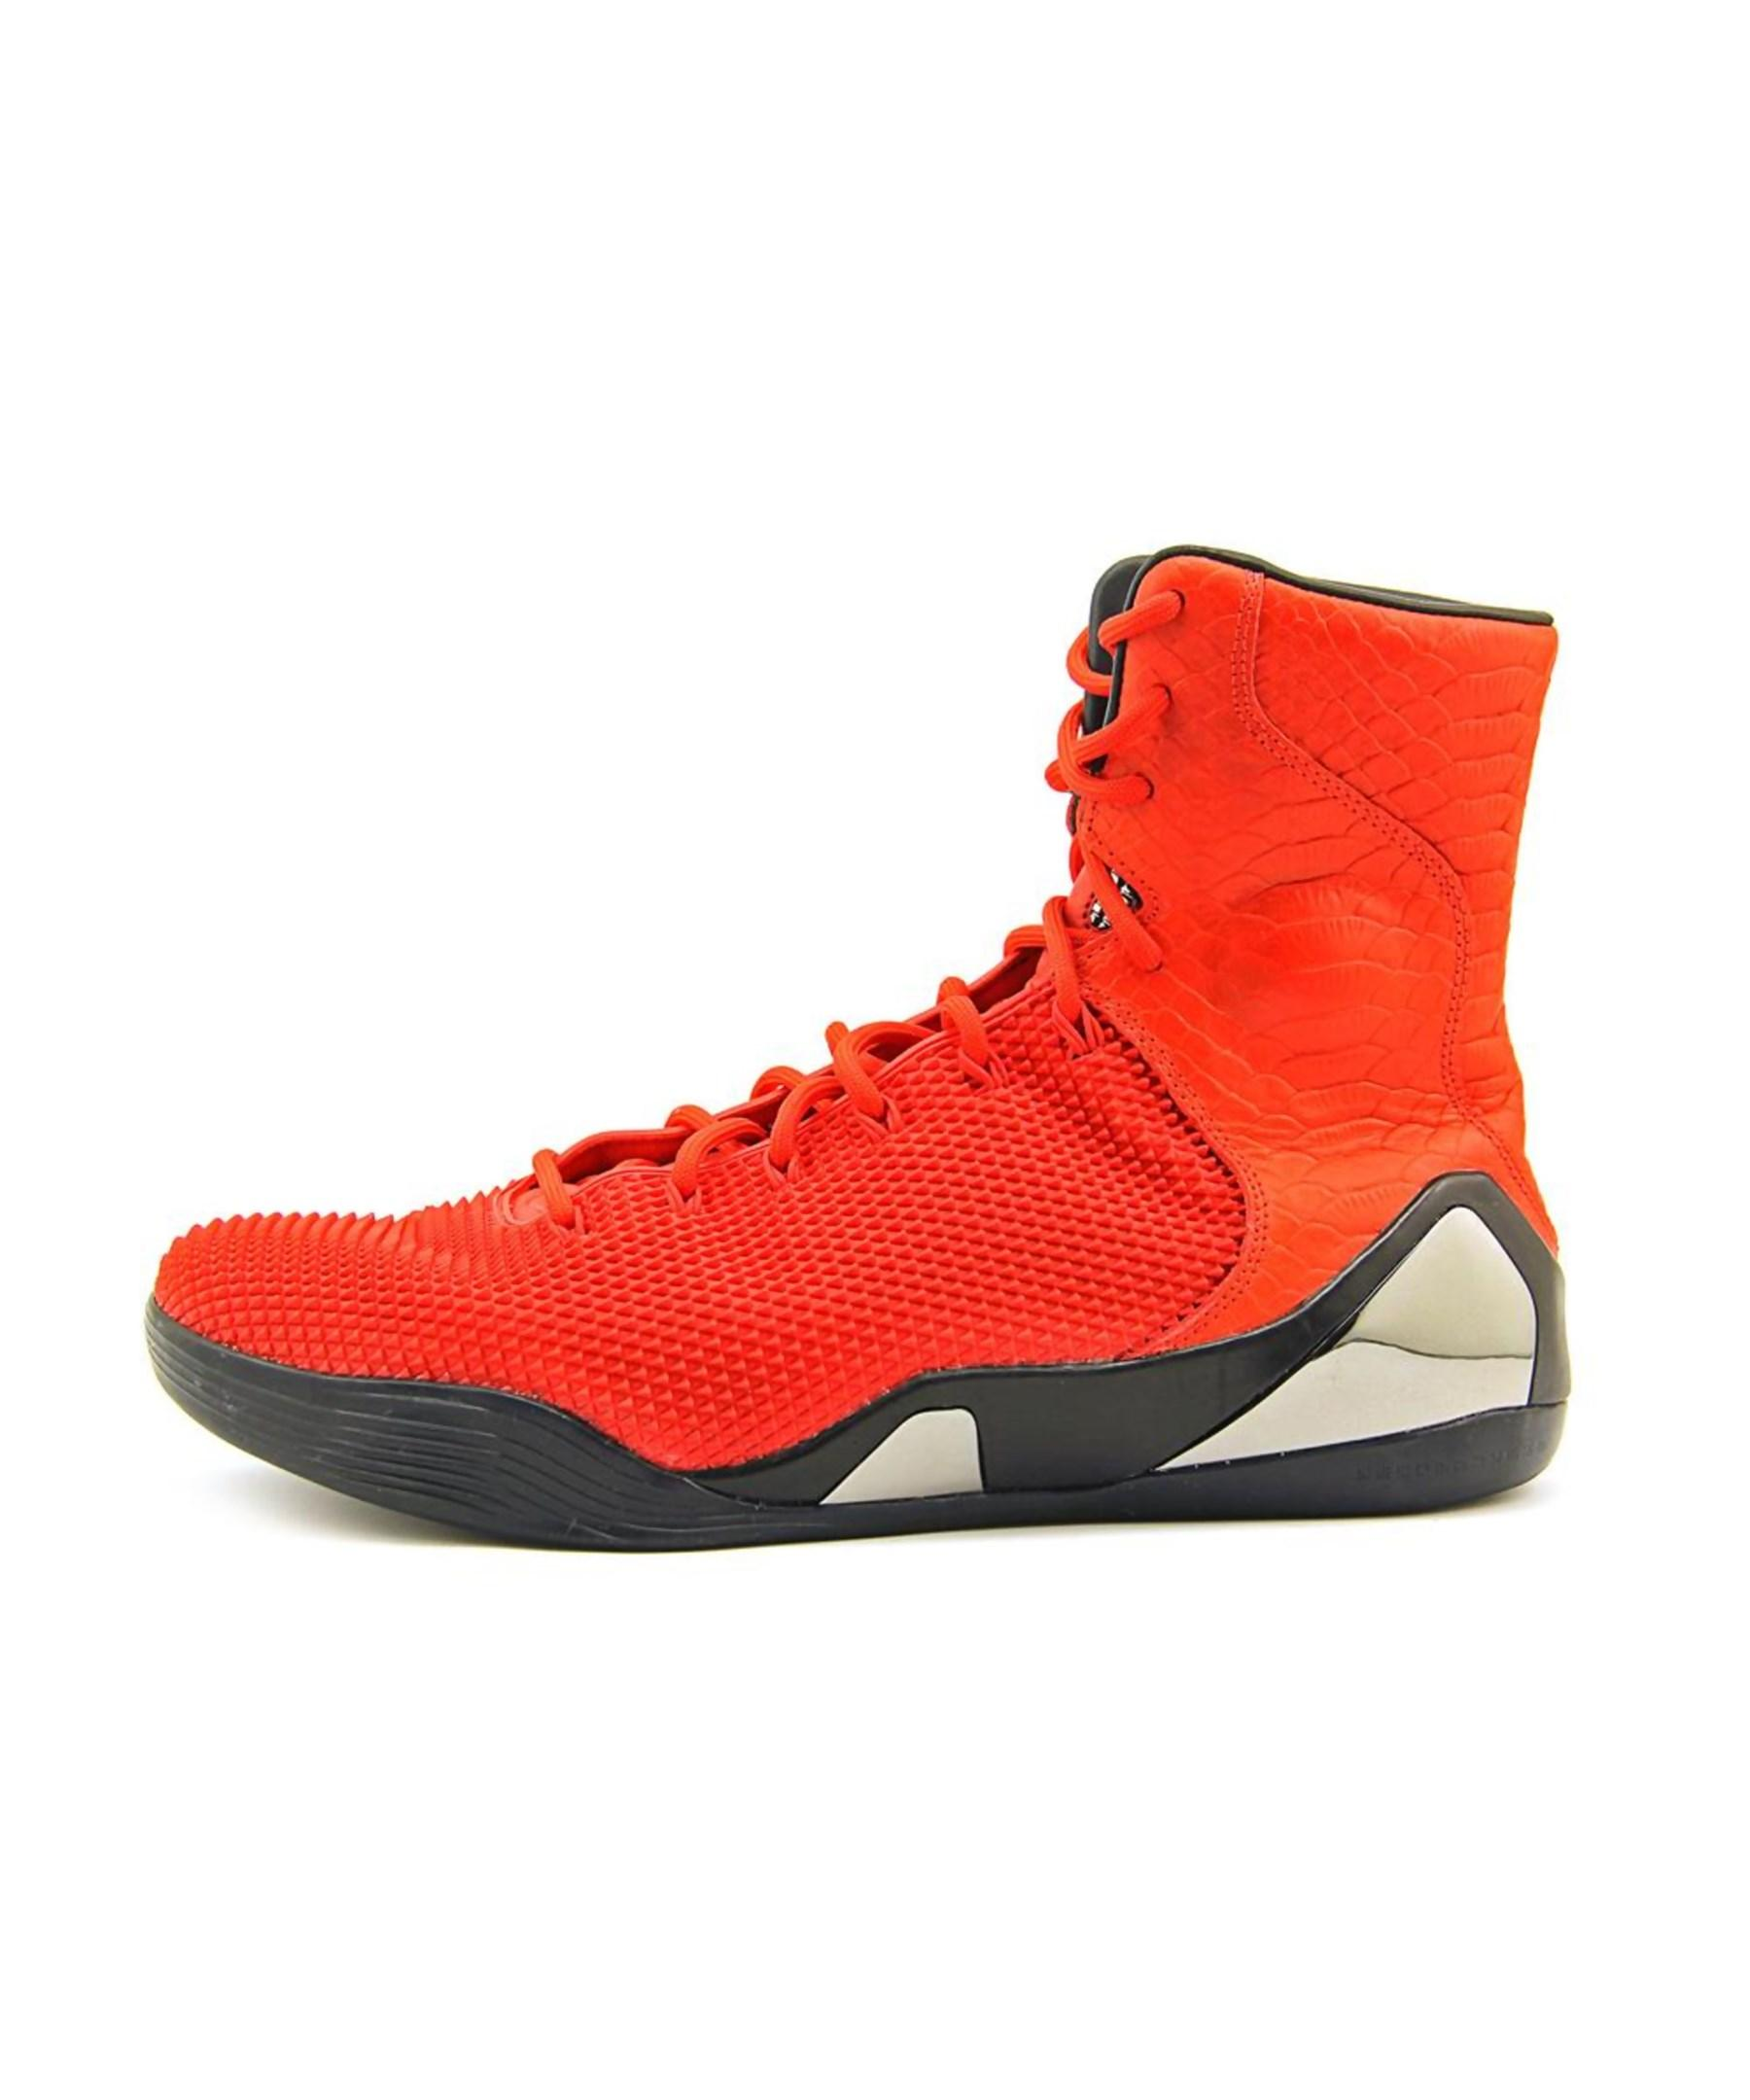 594090e433e8 Lyst - Nike Kobe 9 High Krm Ext Men Round Toe Leather Red Basketball ...